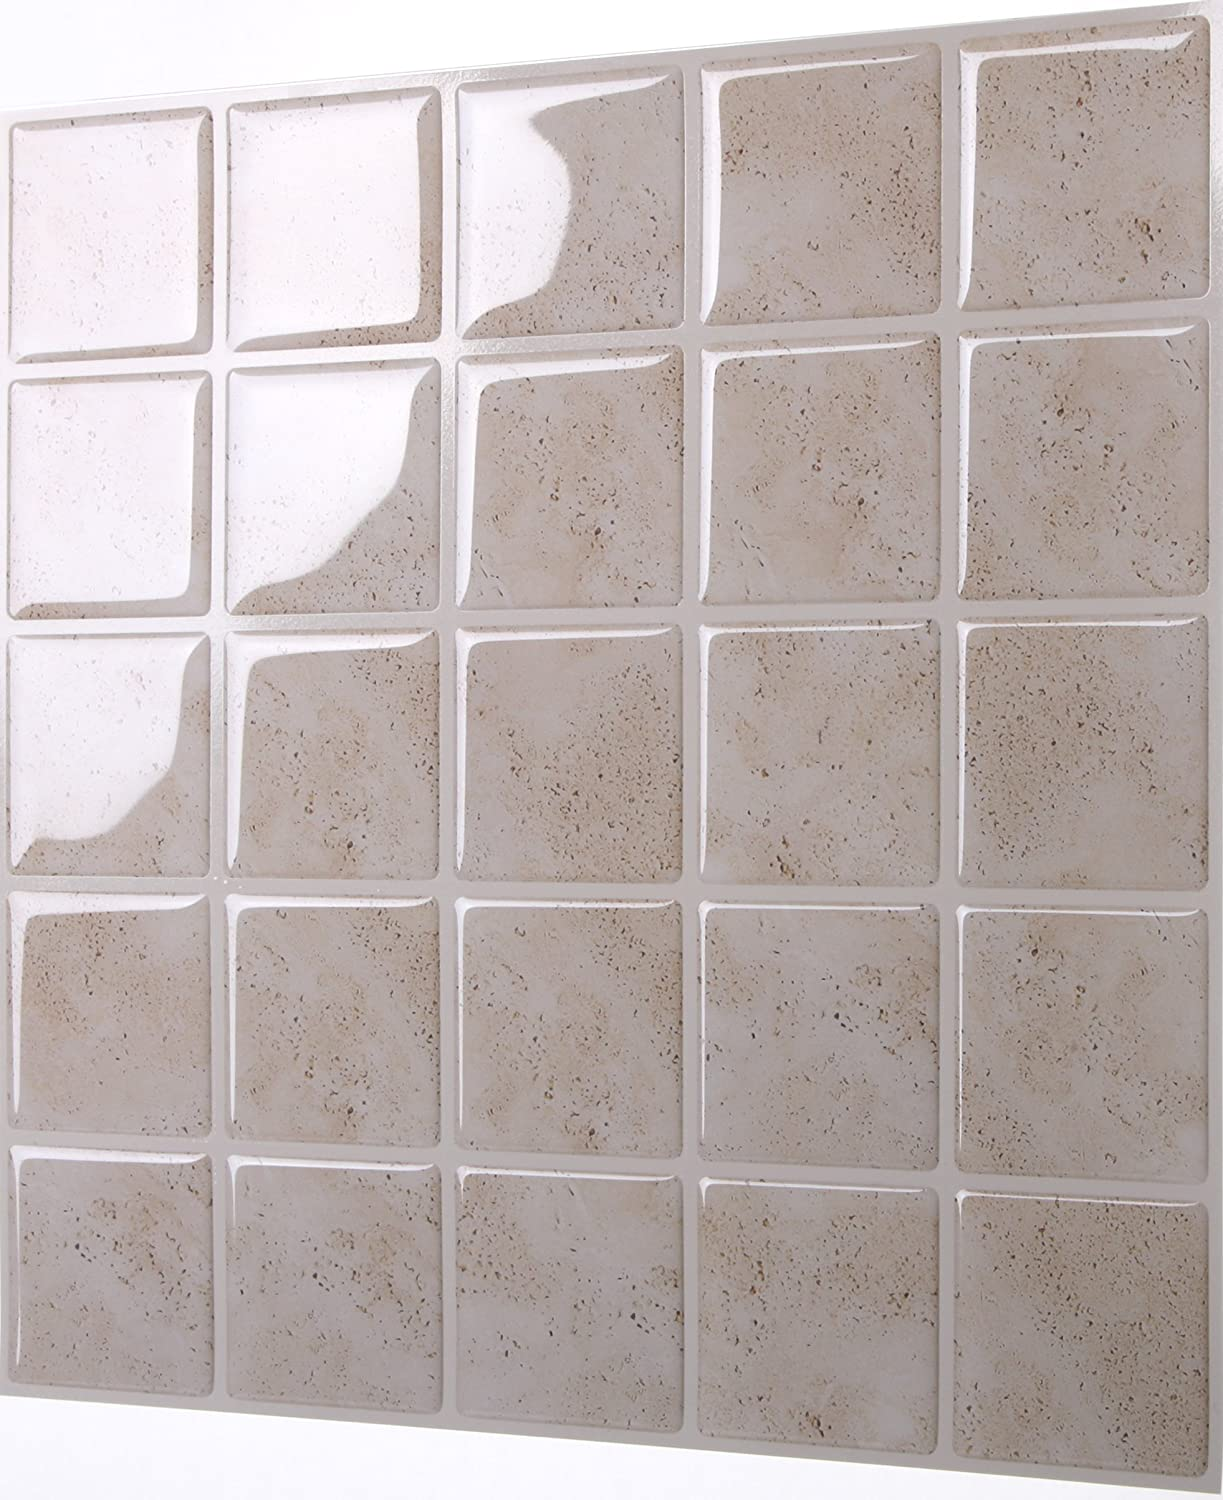 Tic Tac Tiles Anti-Mold Peel and Stick Wall Tile in Marmo Travertine 10 Tiles